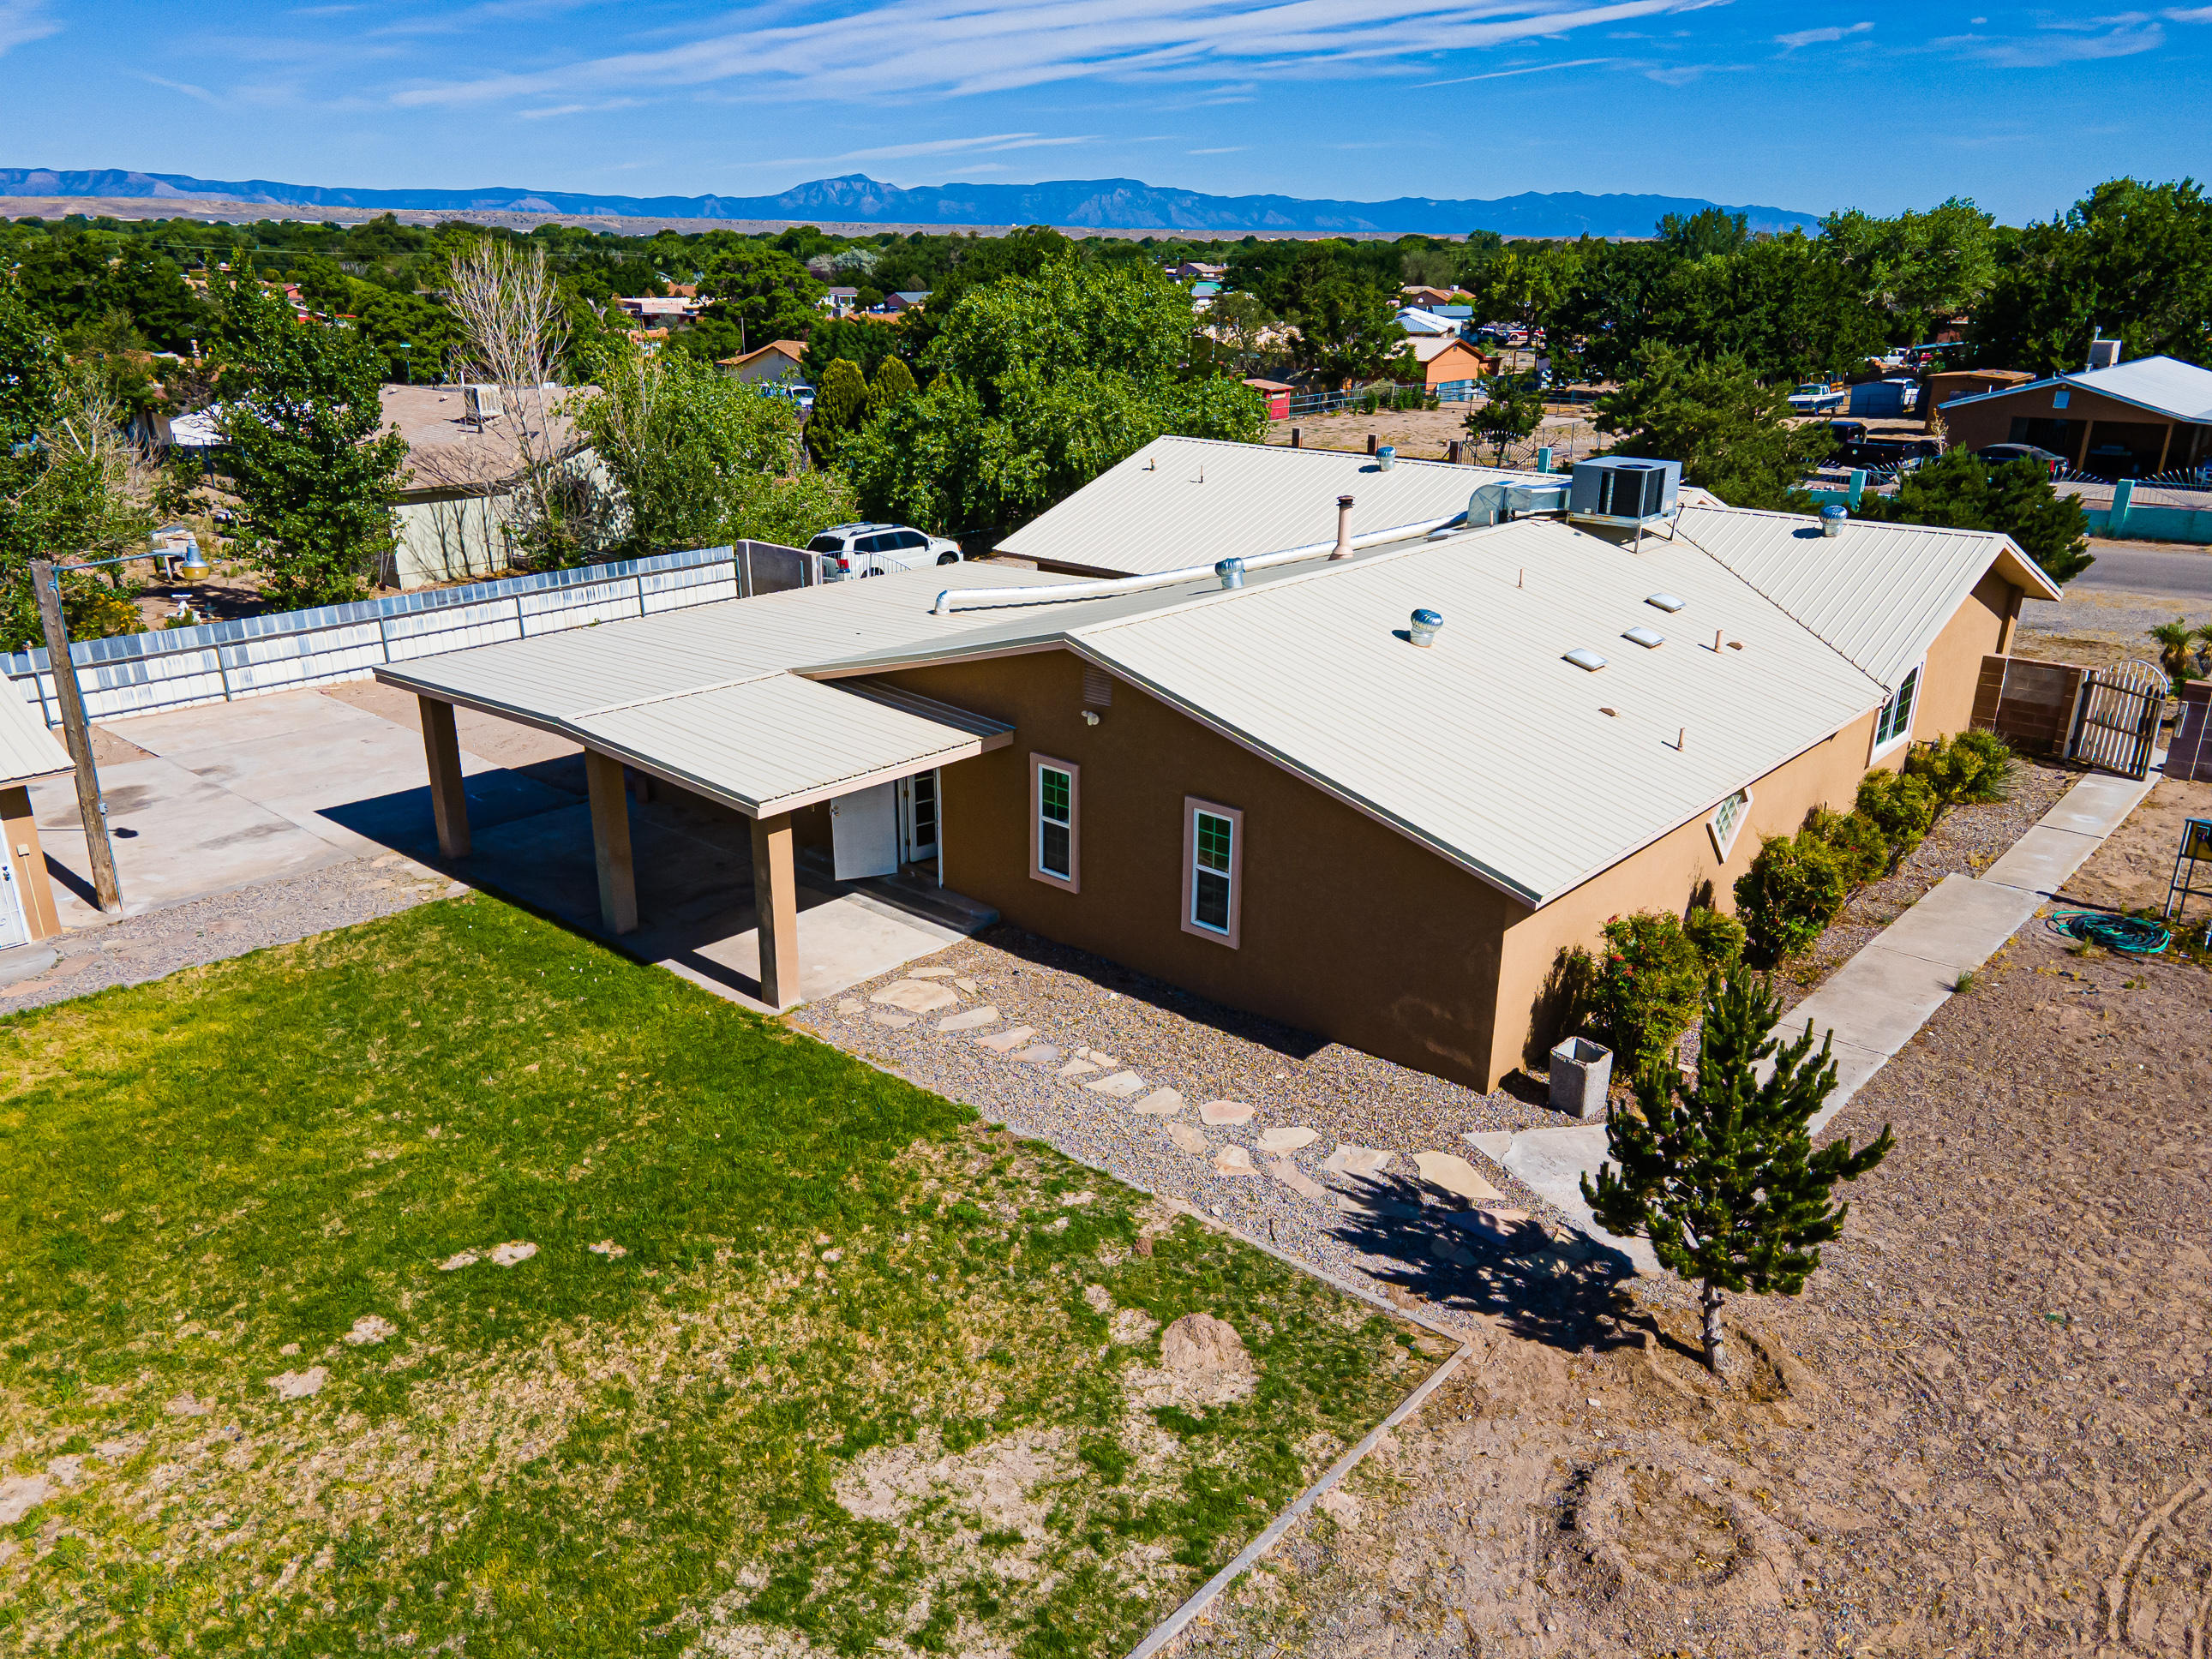 This single story beauty sits on 1/2 Acre lot with side/backyard access with 2 car detached garage with air conditioner (Evap). The home features newer metal roof (2018), refrigerated air (2018), updated windows (2018), synthetic stucco (2018), new paint, 3 Bedroom, 3 Living Areas or make the 3rd living area into the 4th Bedroom/Office/Bonus room. Home also features, updated light fixtures, lots of cabinet space and open kitchen with formal dining area. Kitchen comes with Stainless steel Appliances, Tile and laminate floors throughout and no carpet. Large master bedroom with garden tub and separate shower and Large walk-in closet. As a bonus, you have a front and back covered porch and landscaping that is easy to maintain. Call today for your private tour.